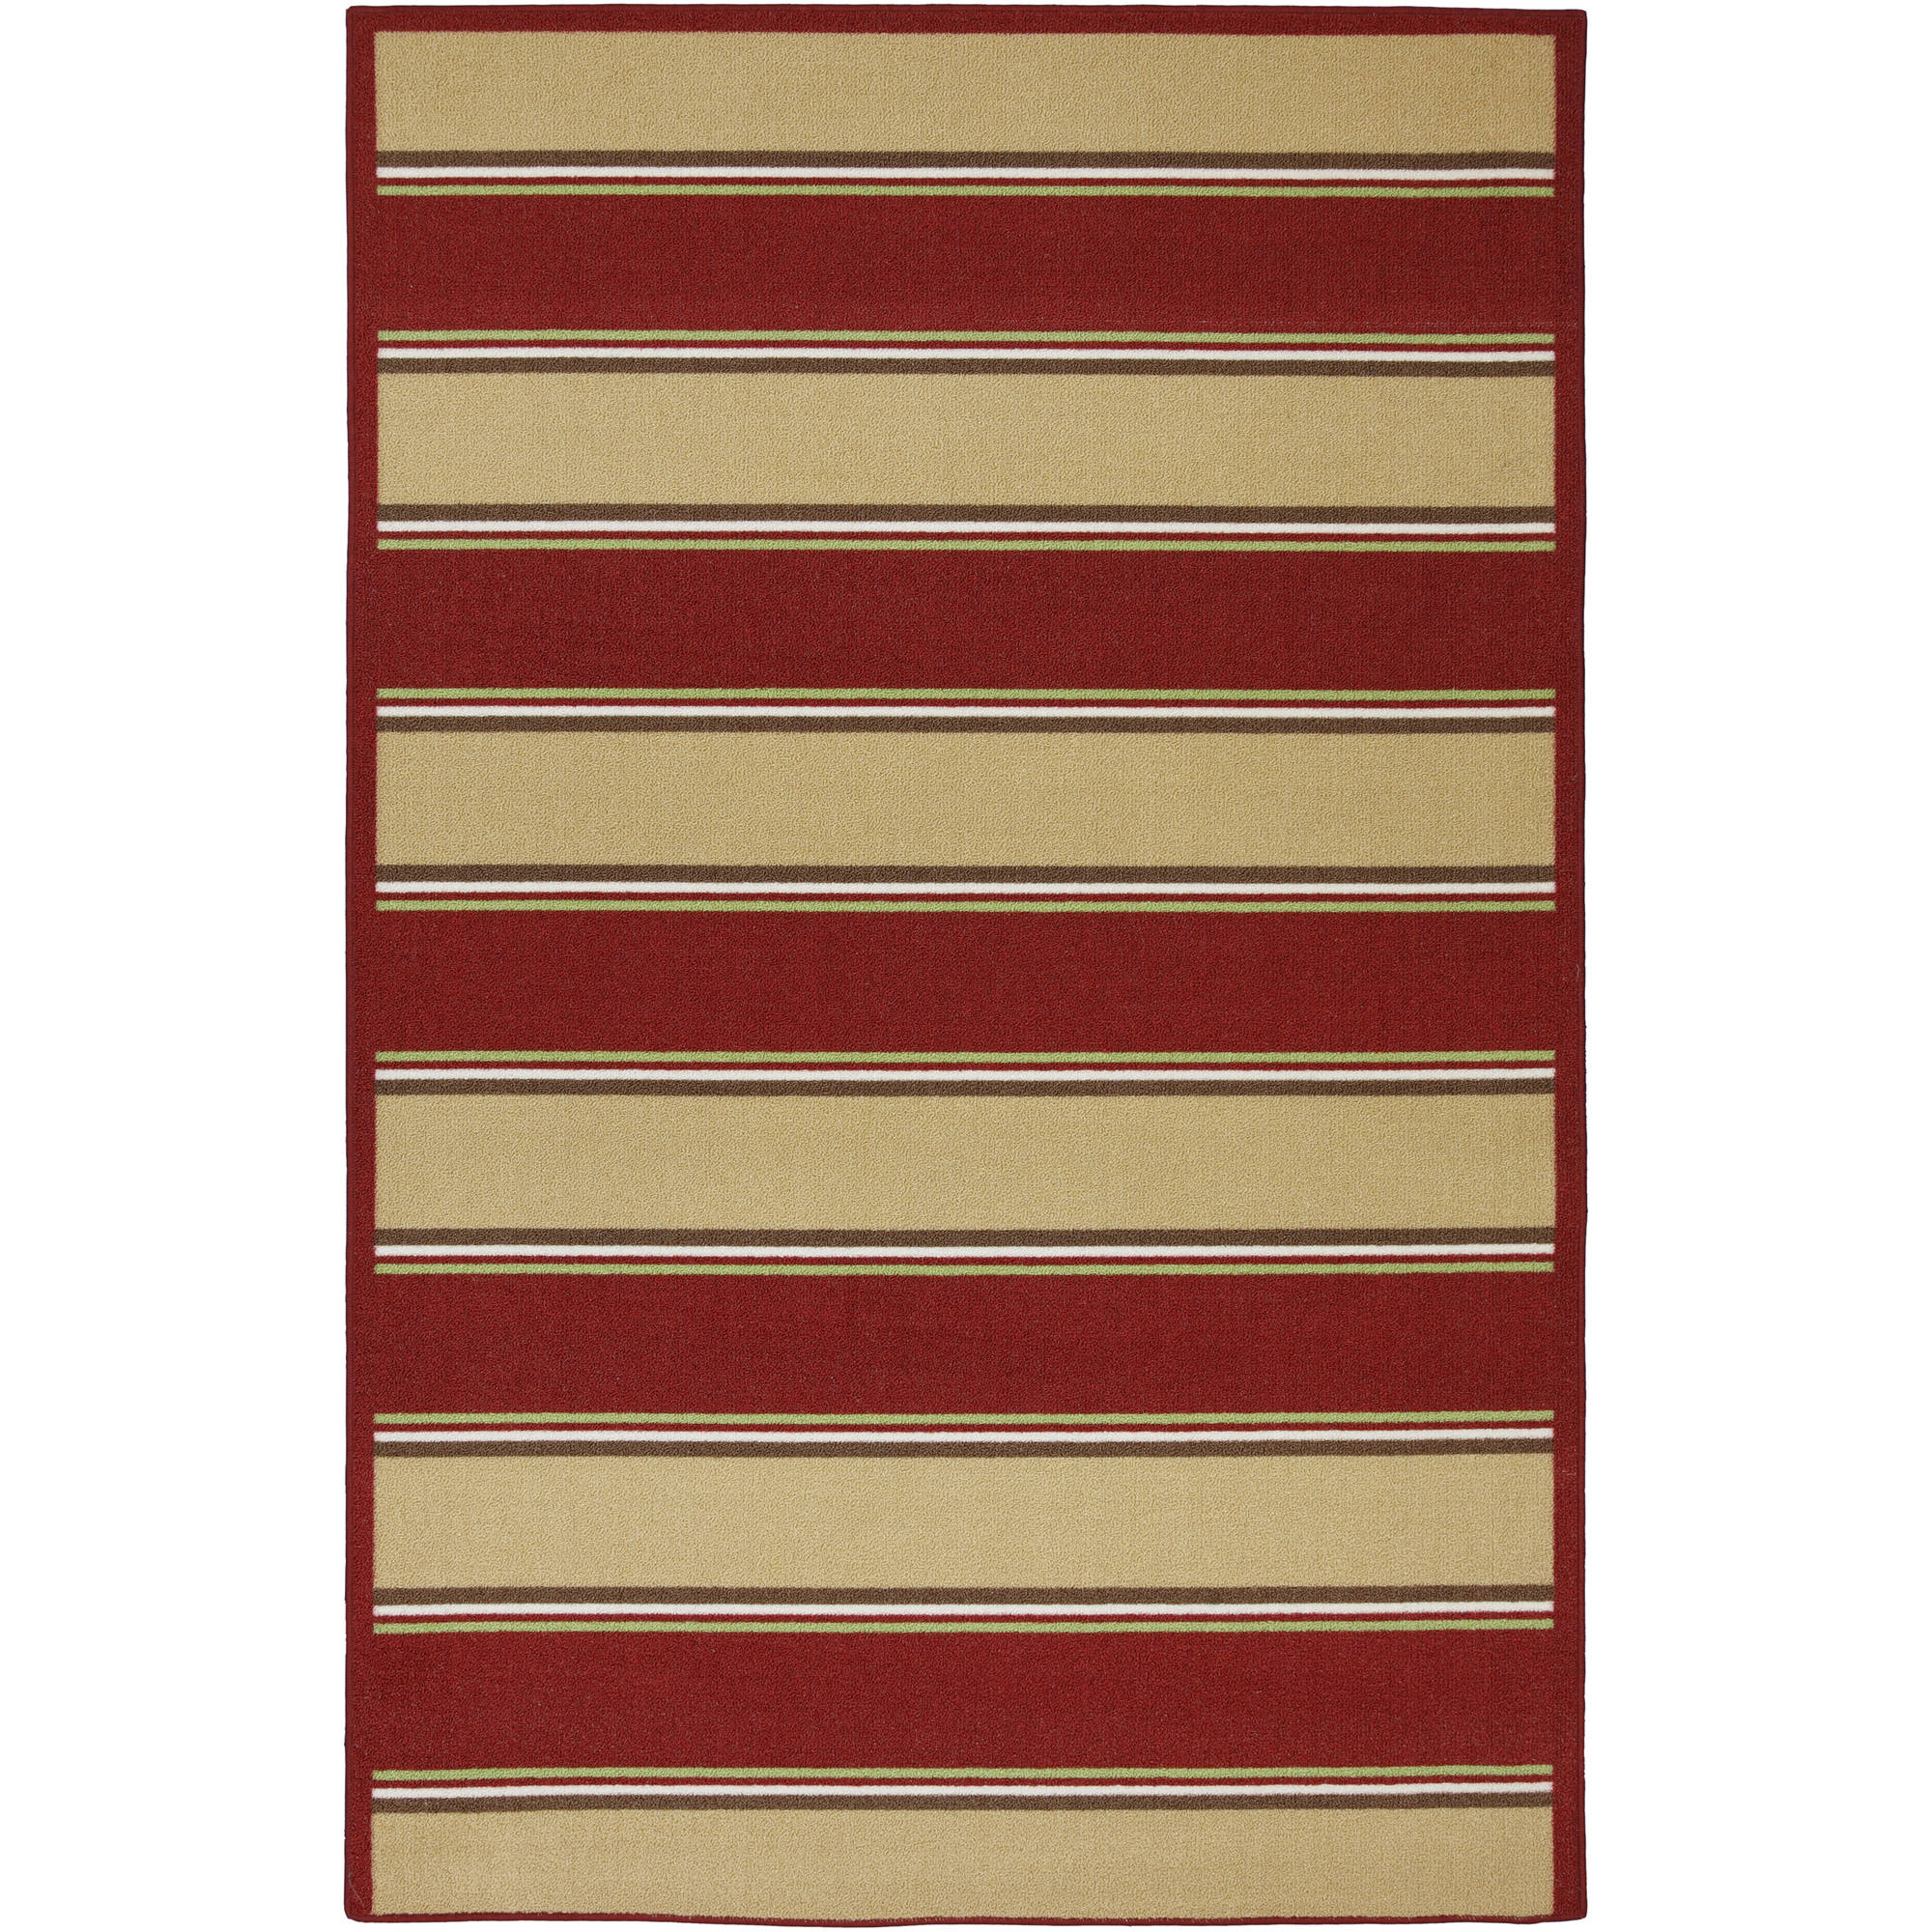 Better Homes and Gardens Fairglen 5' x 8' Area Indoor/Outdoor Rug